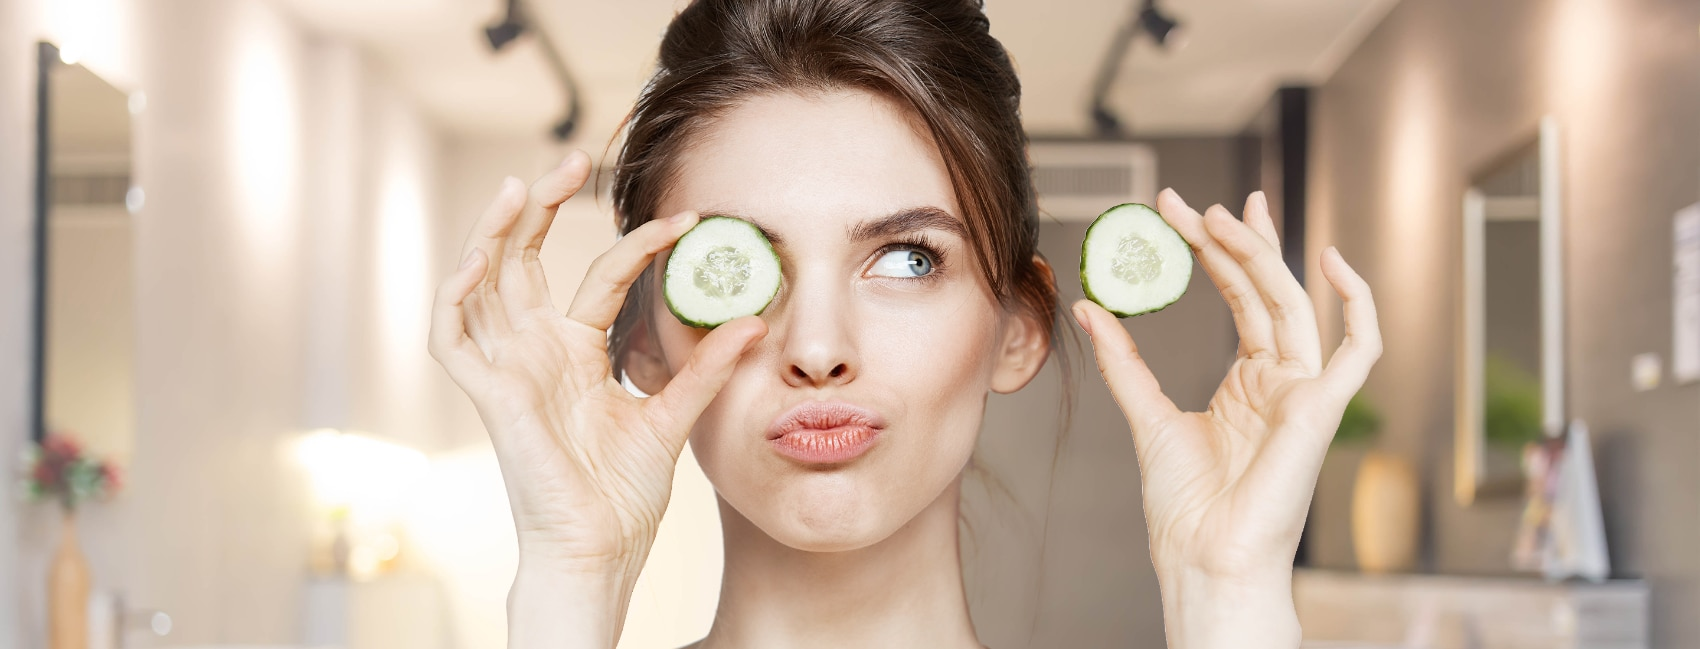 A girl putting cucumber slices on her eyes in a bathroom setting